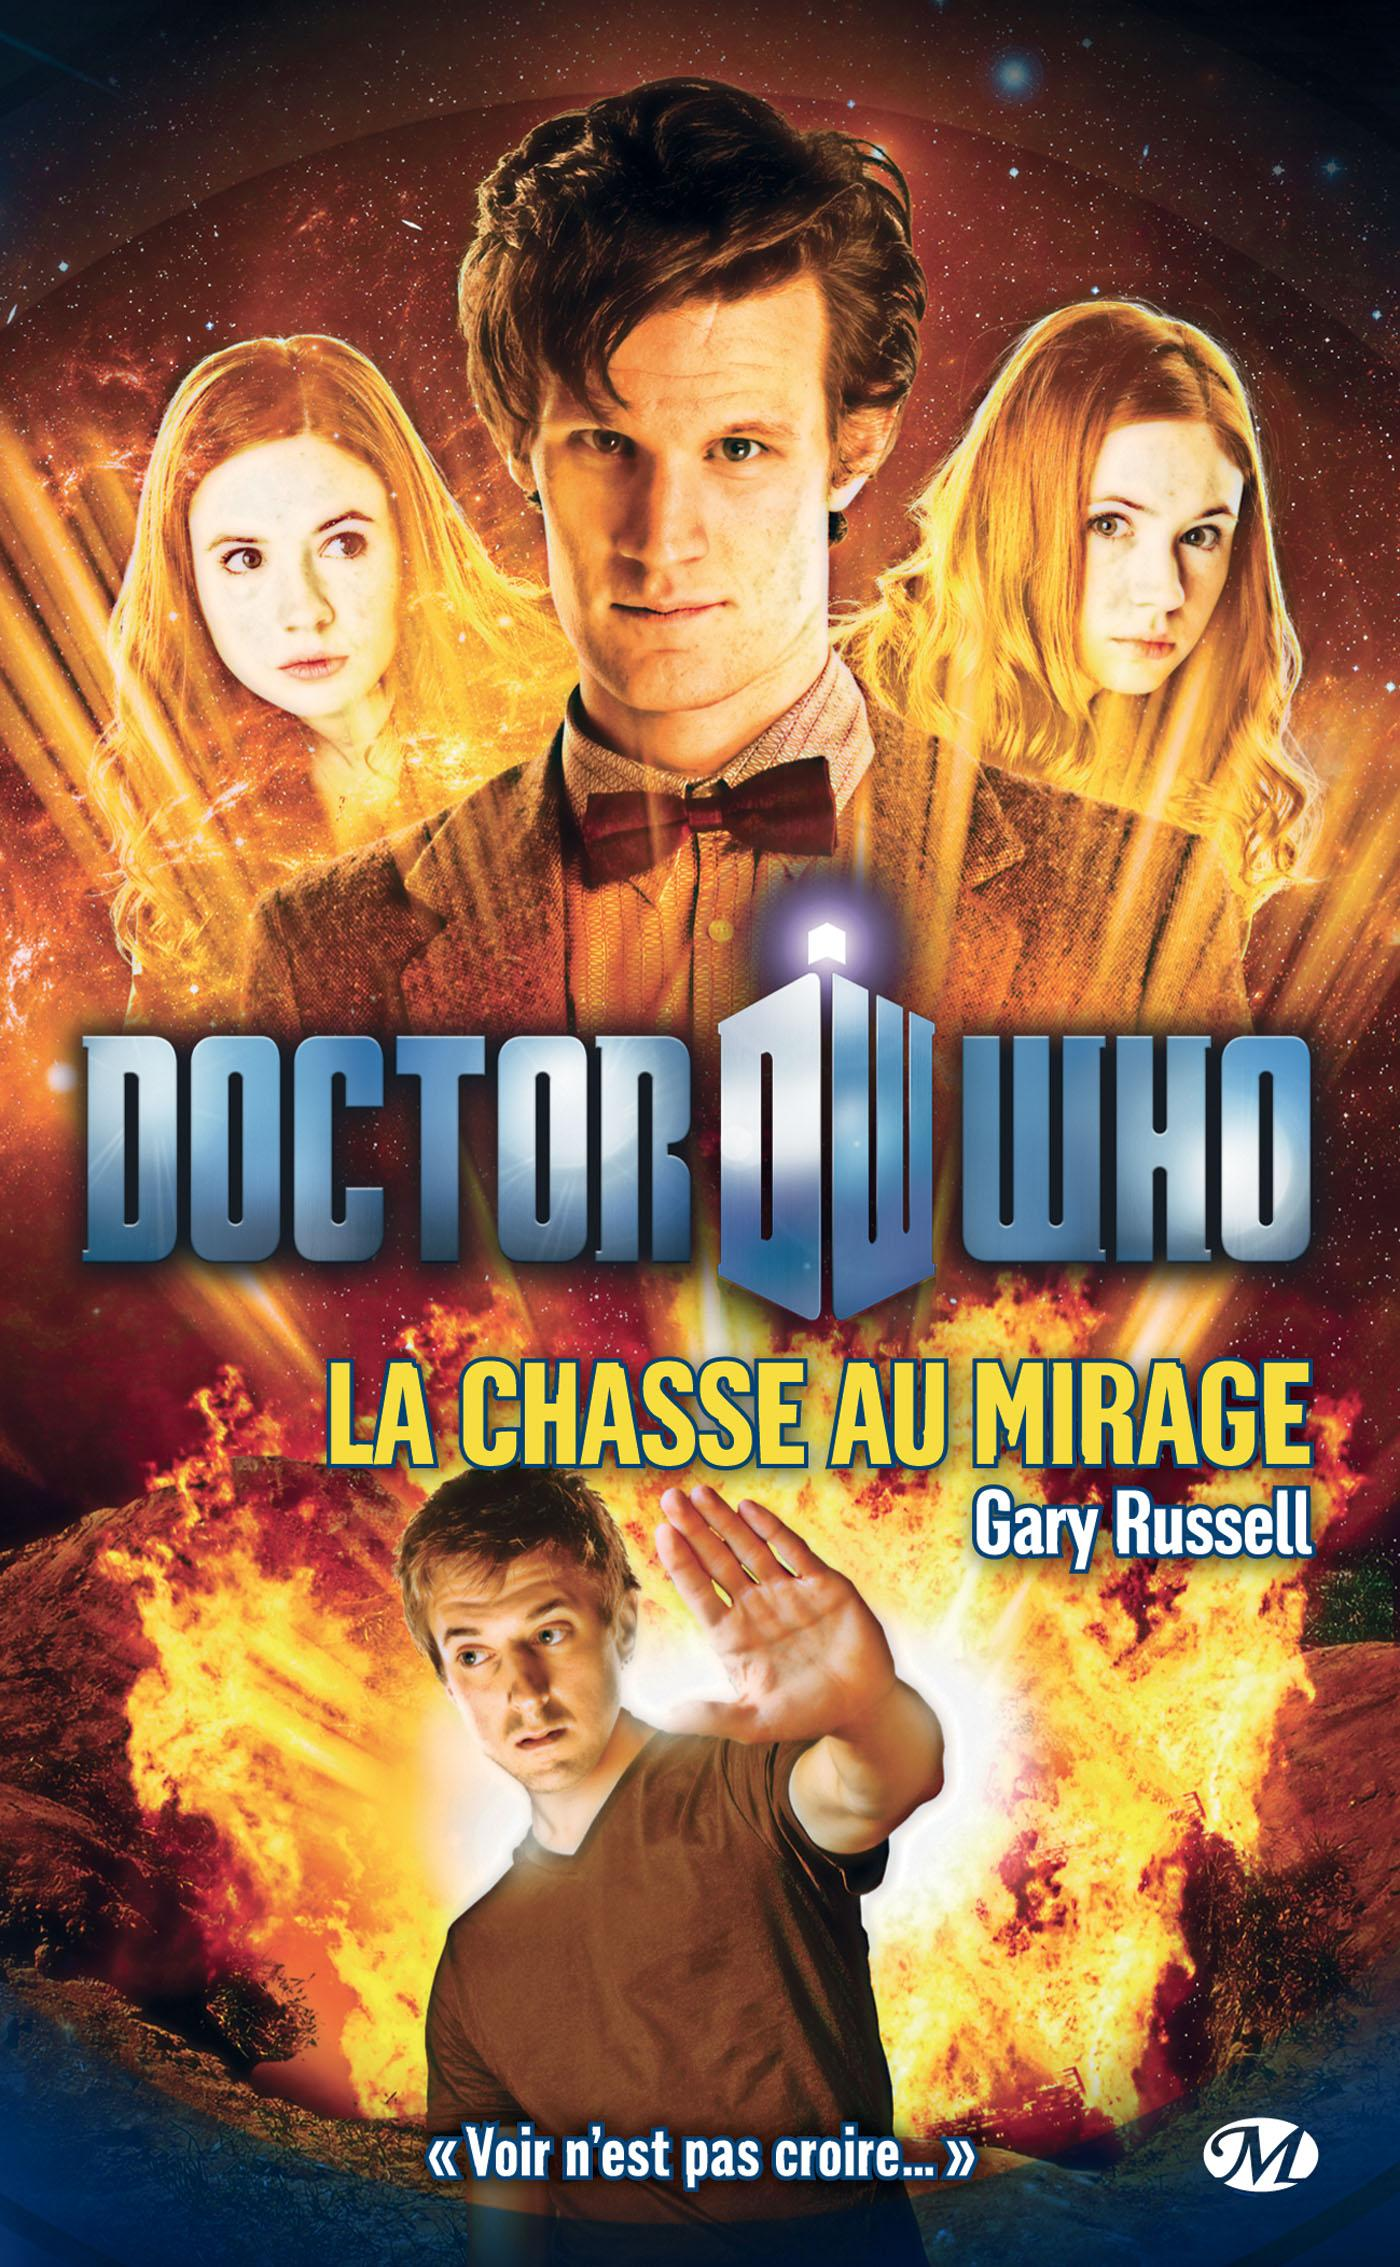 La Chasse au mirage, DOCTOR WHO, T4